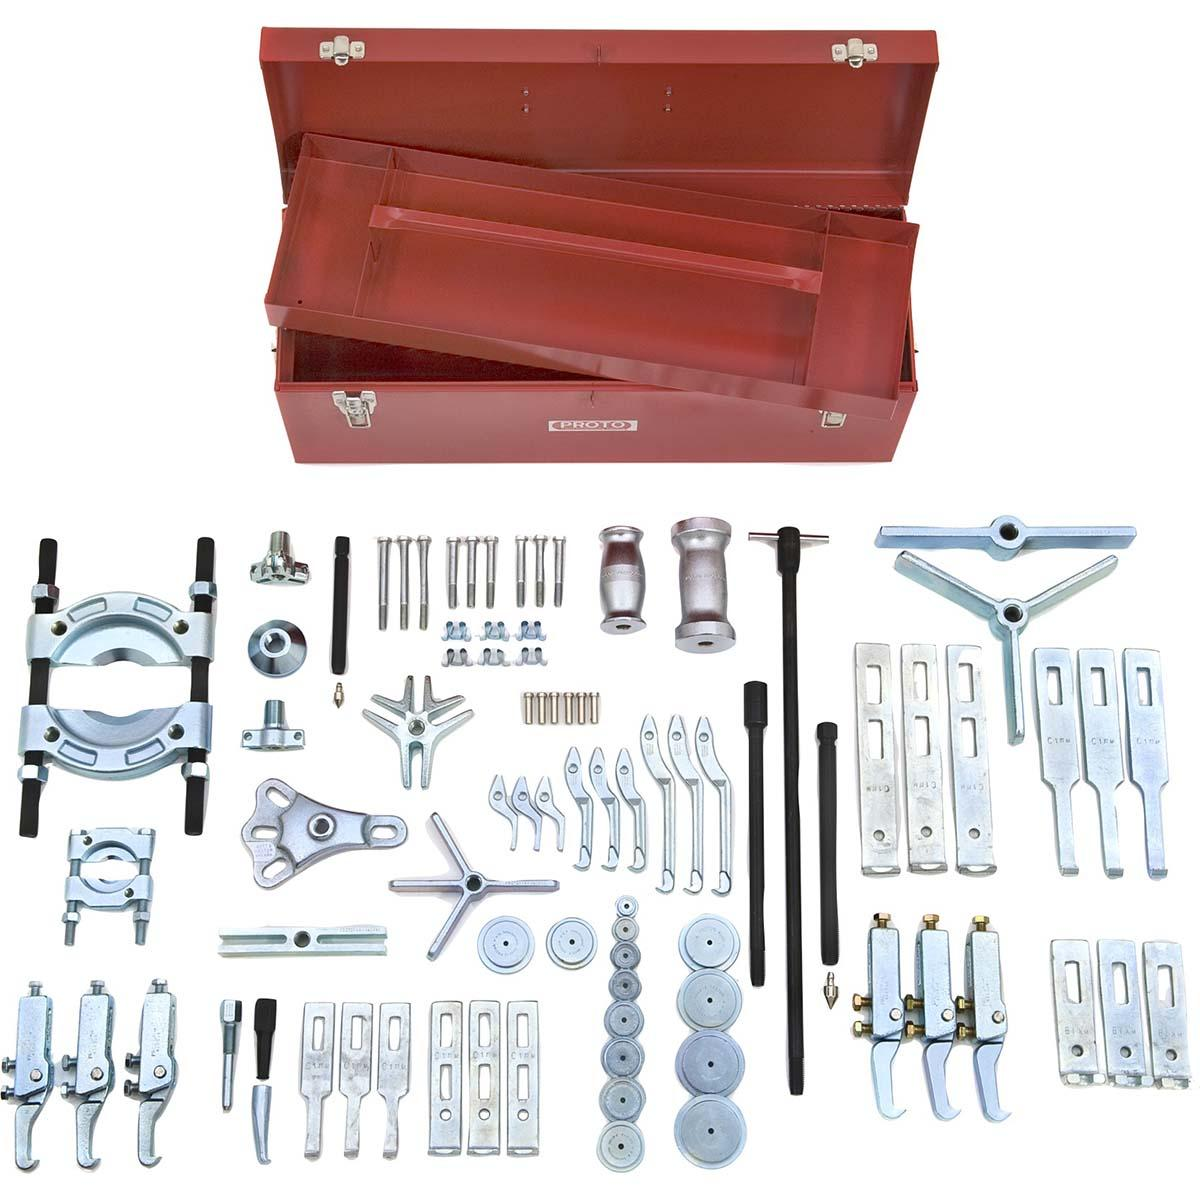 Proto® Proto-Ease™ Master Puller Set (With Box)